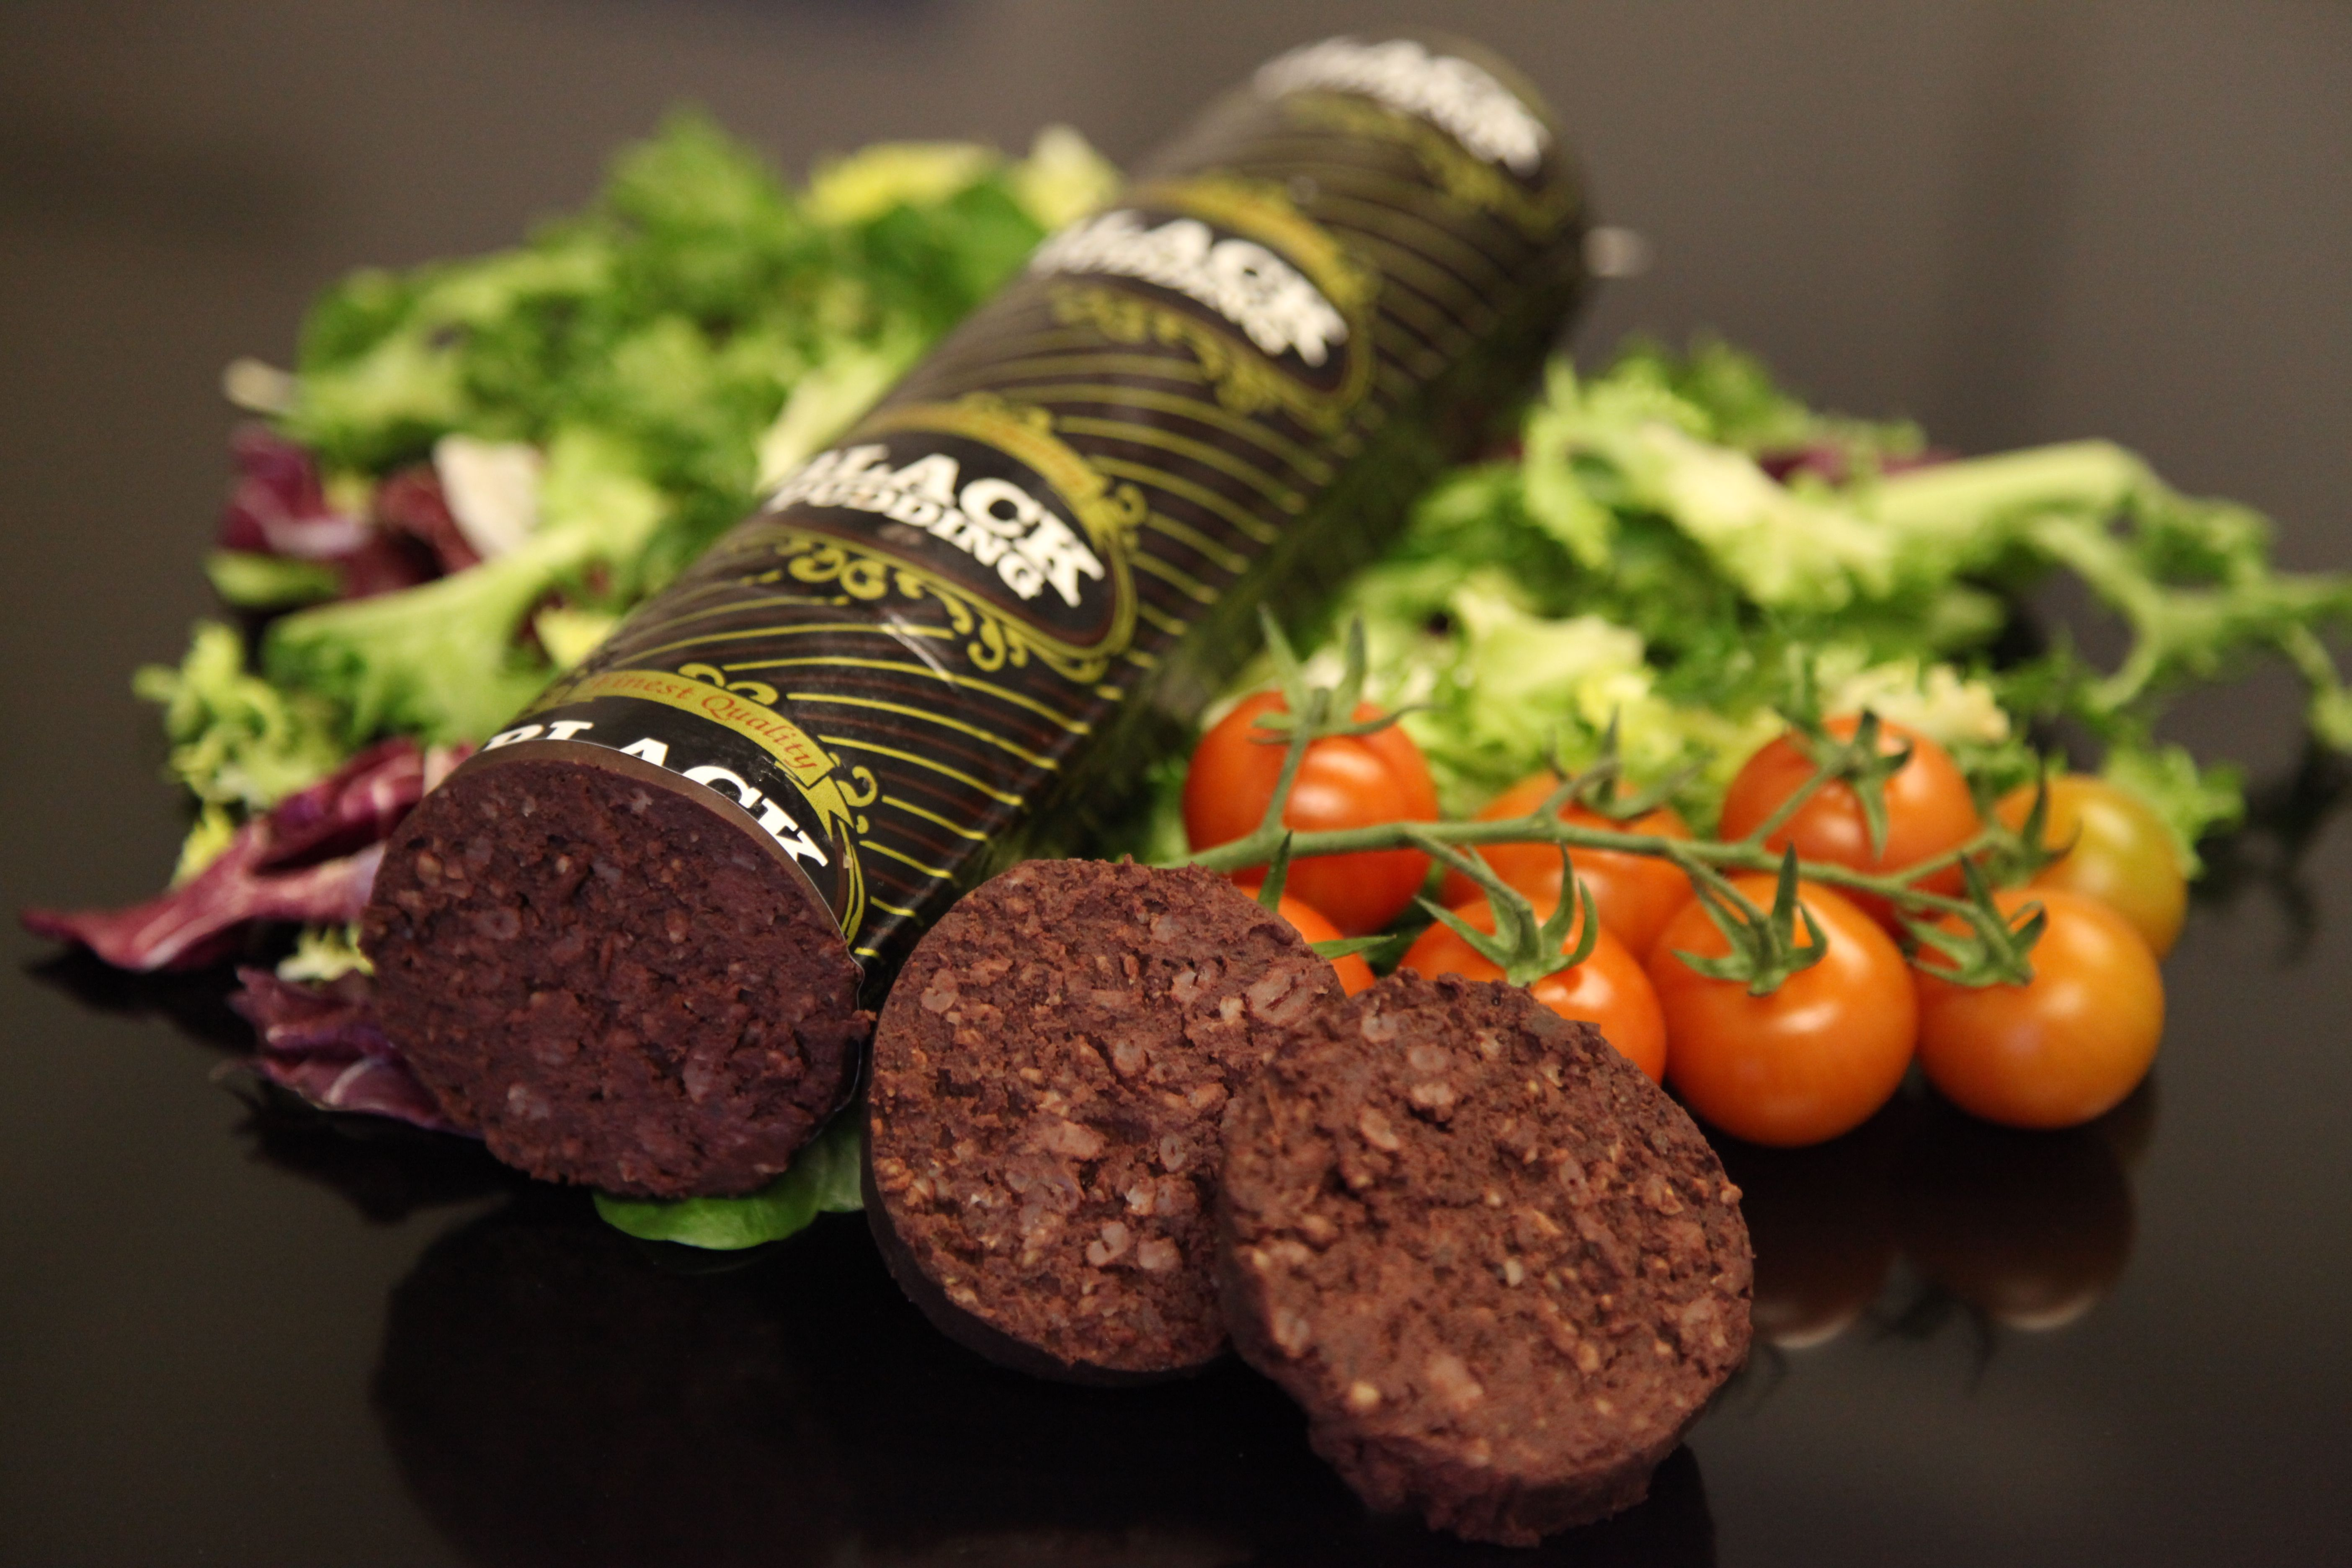 Black Pudding made by McCartney's